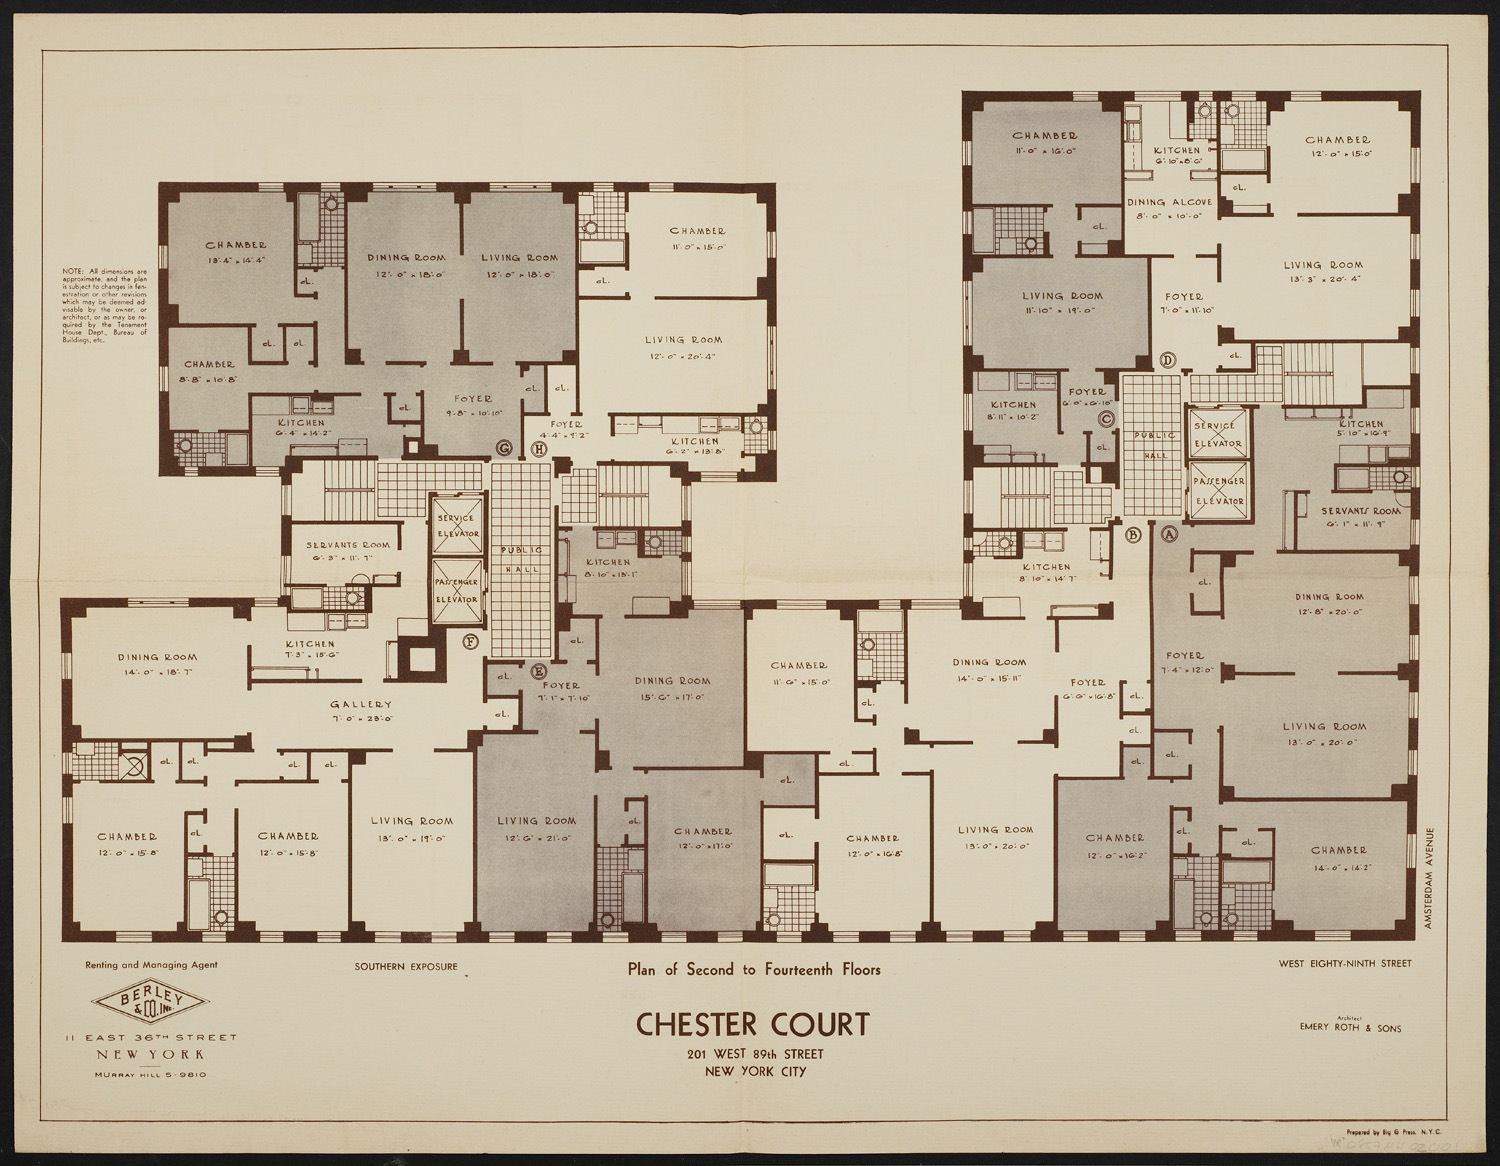 Floor Plans « Chester Court